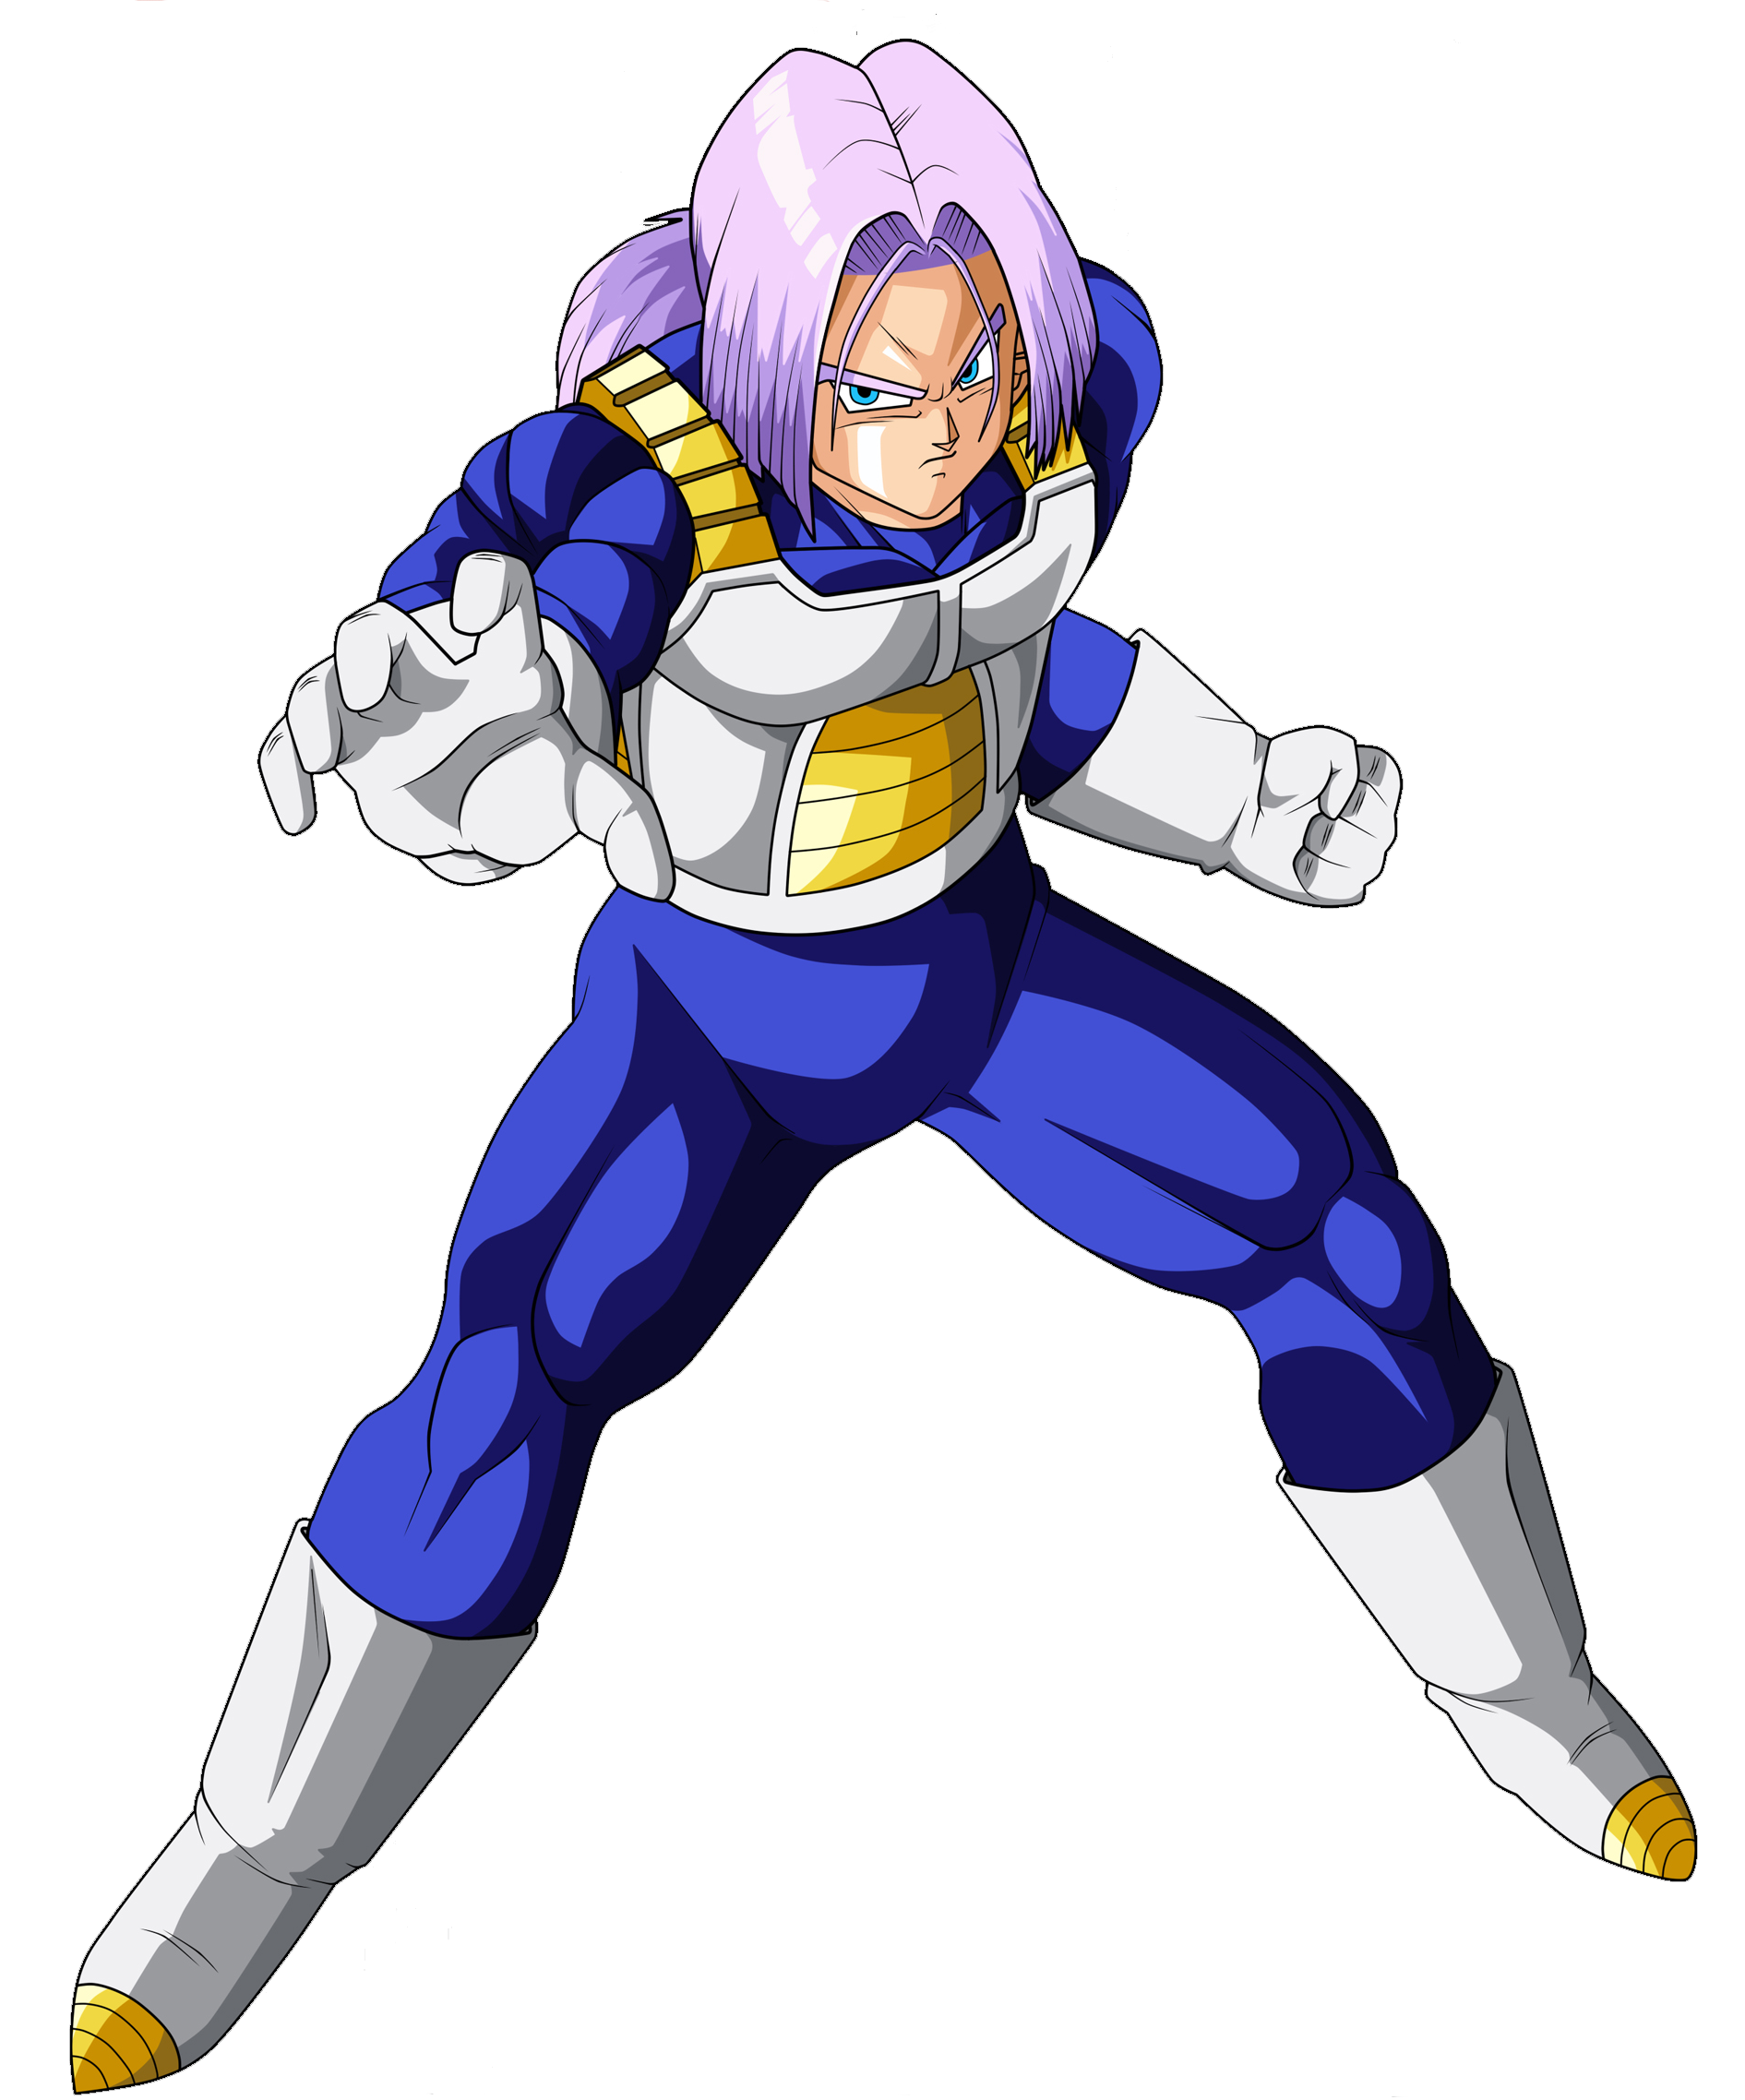 image trunks adulto render png heroes wiki fandom powered by wikia